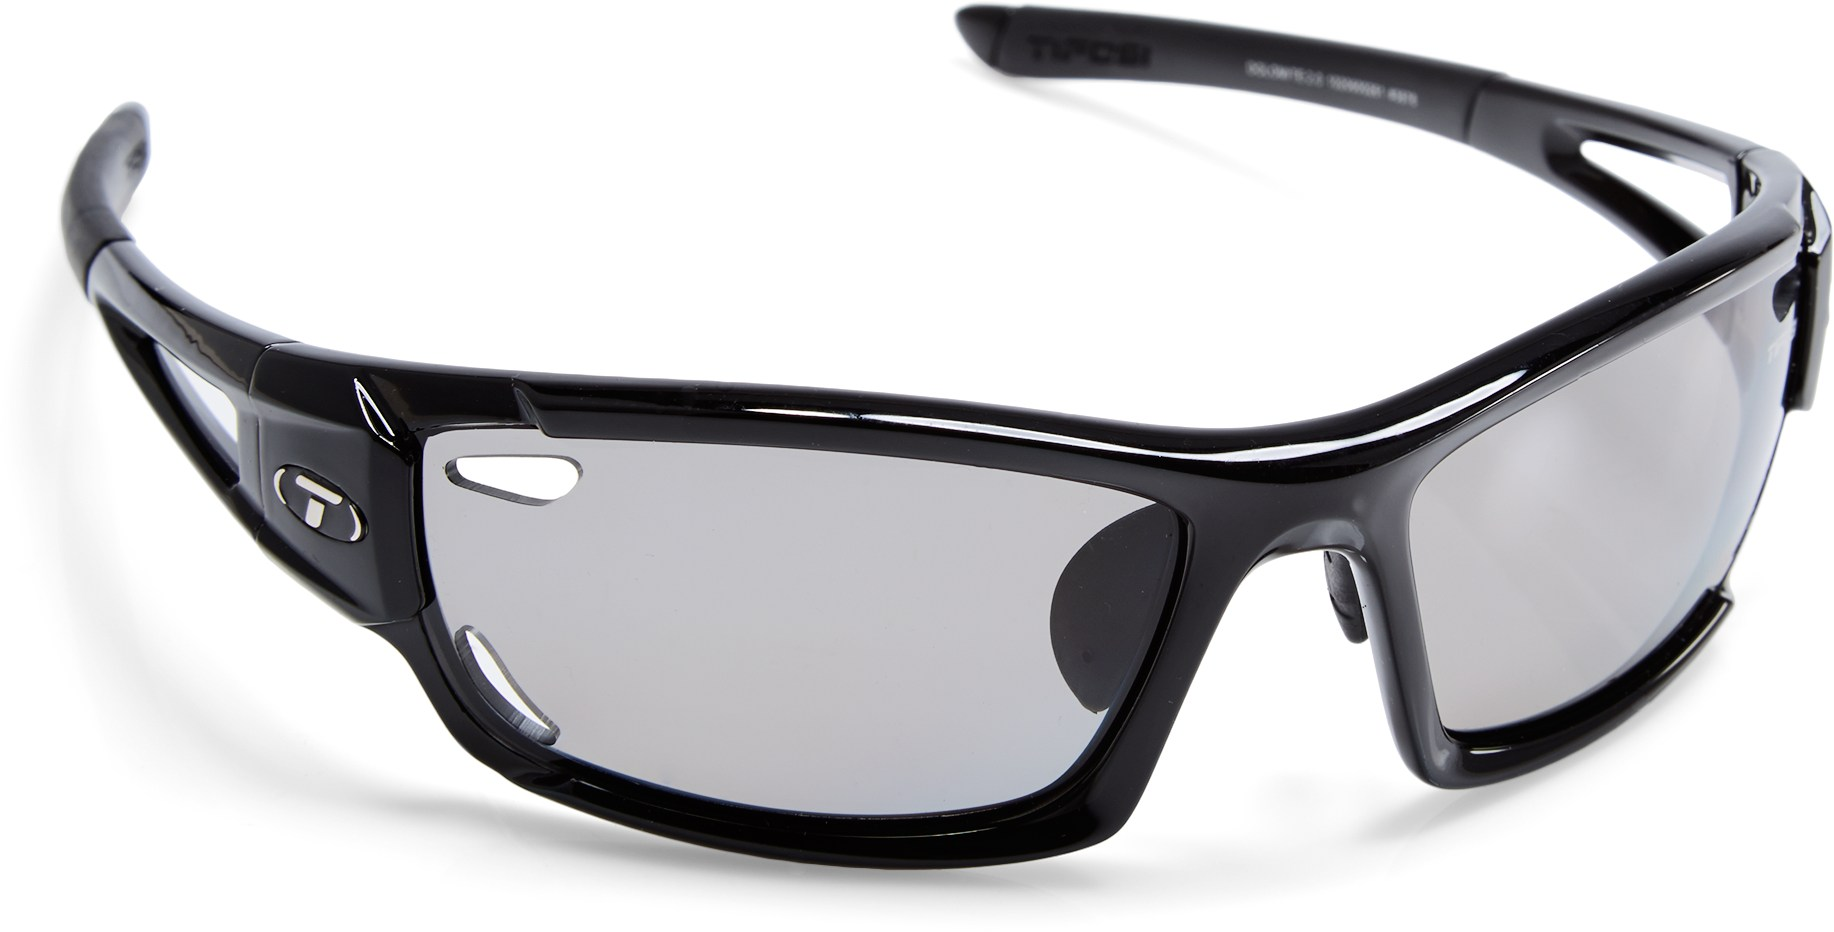 449c949b63e Tifosi Dolomite 2.0 2015. I choose the Dolomites with the photochromic  lenses. In the end they ...